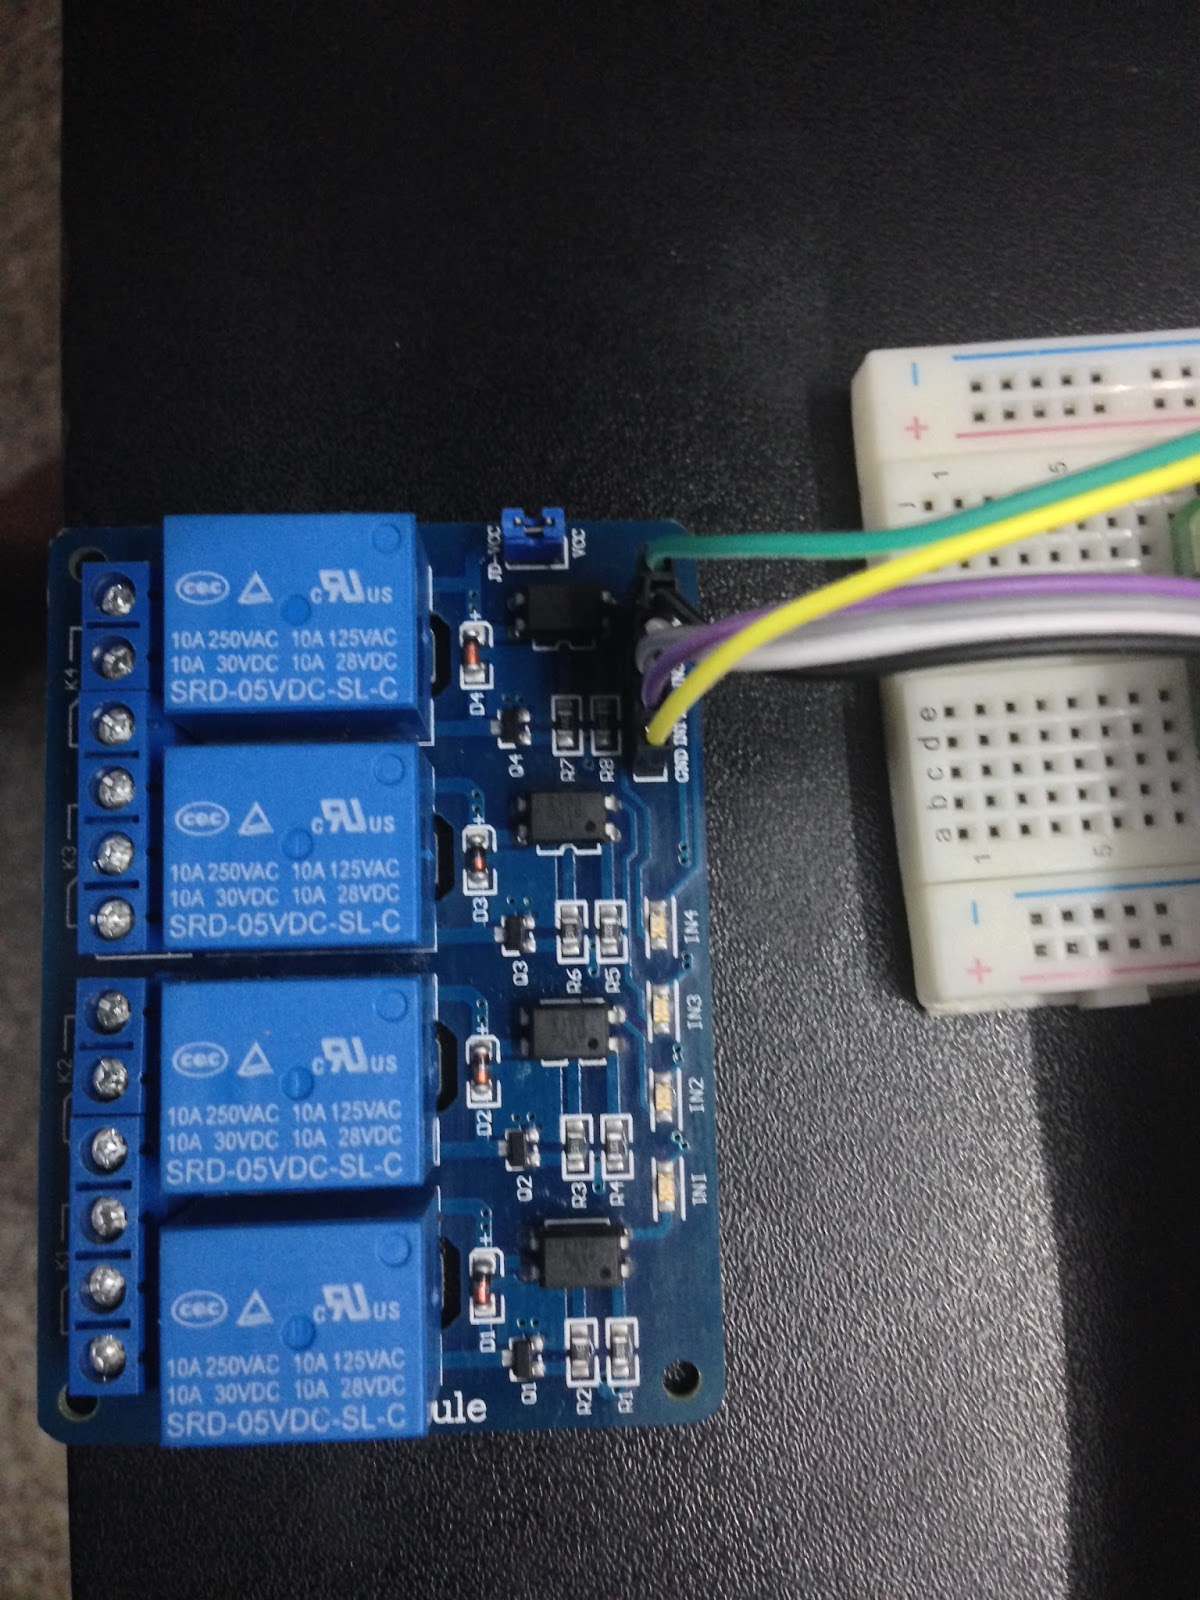 Iot Java Raspberry Pi Pi4j 4 Channel Relay Agilerules Blog Toggle Circuit Electronic Directory 2 Once The Above Connection Is Complete Power On Now Connect To Using Putty With Your Credentials And